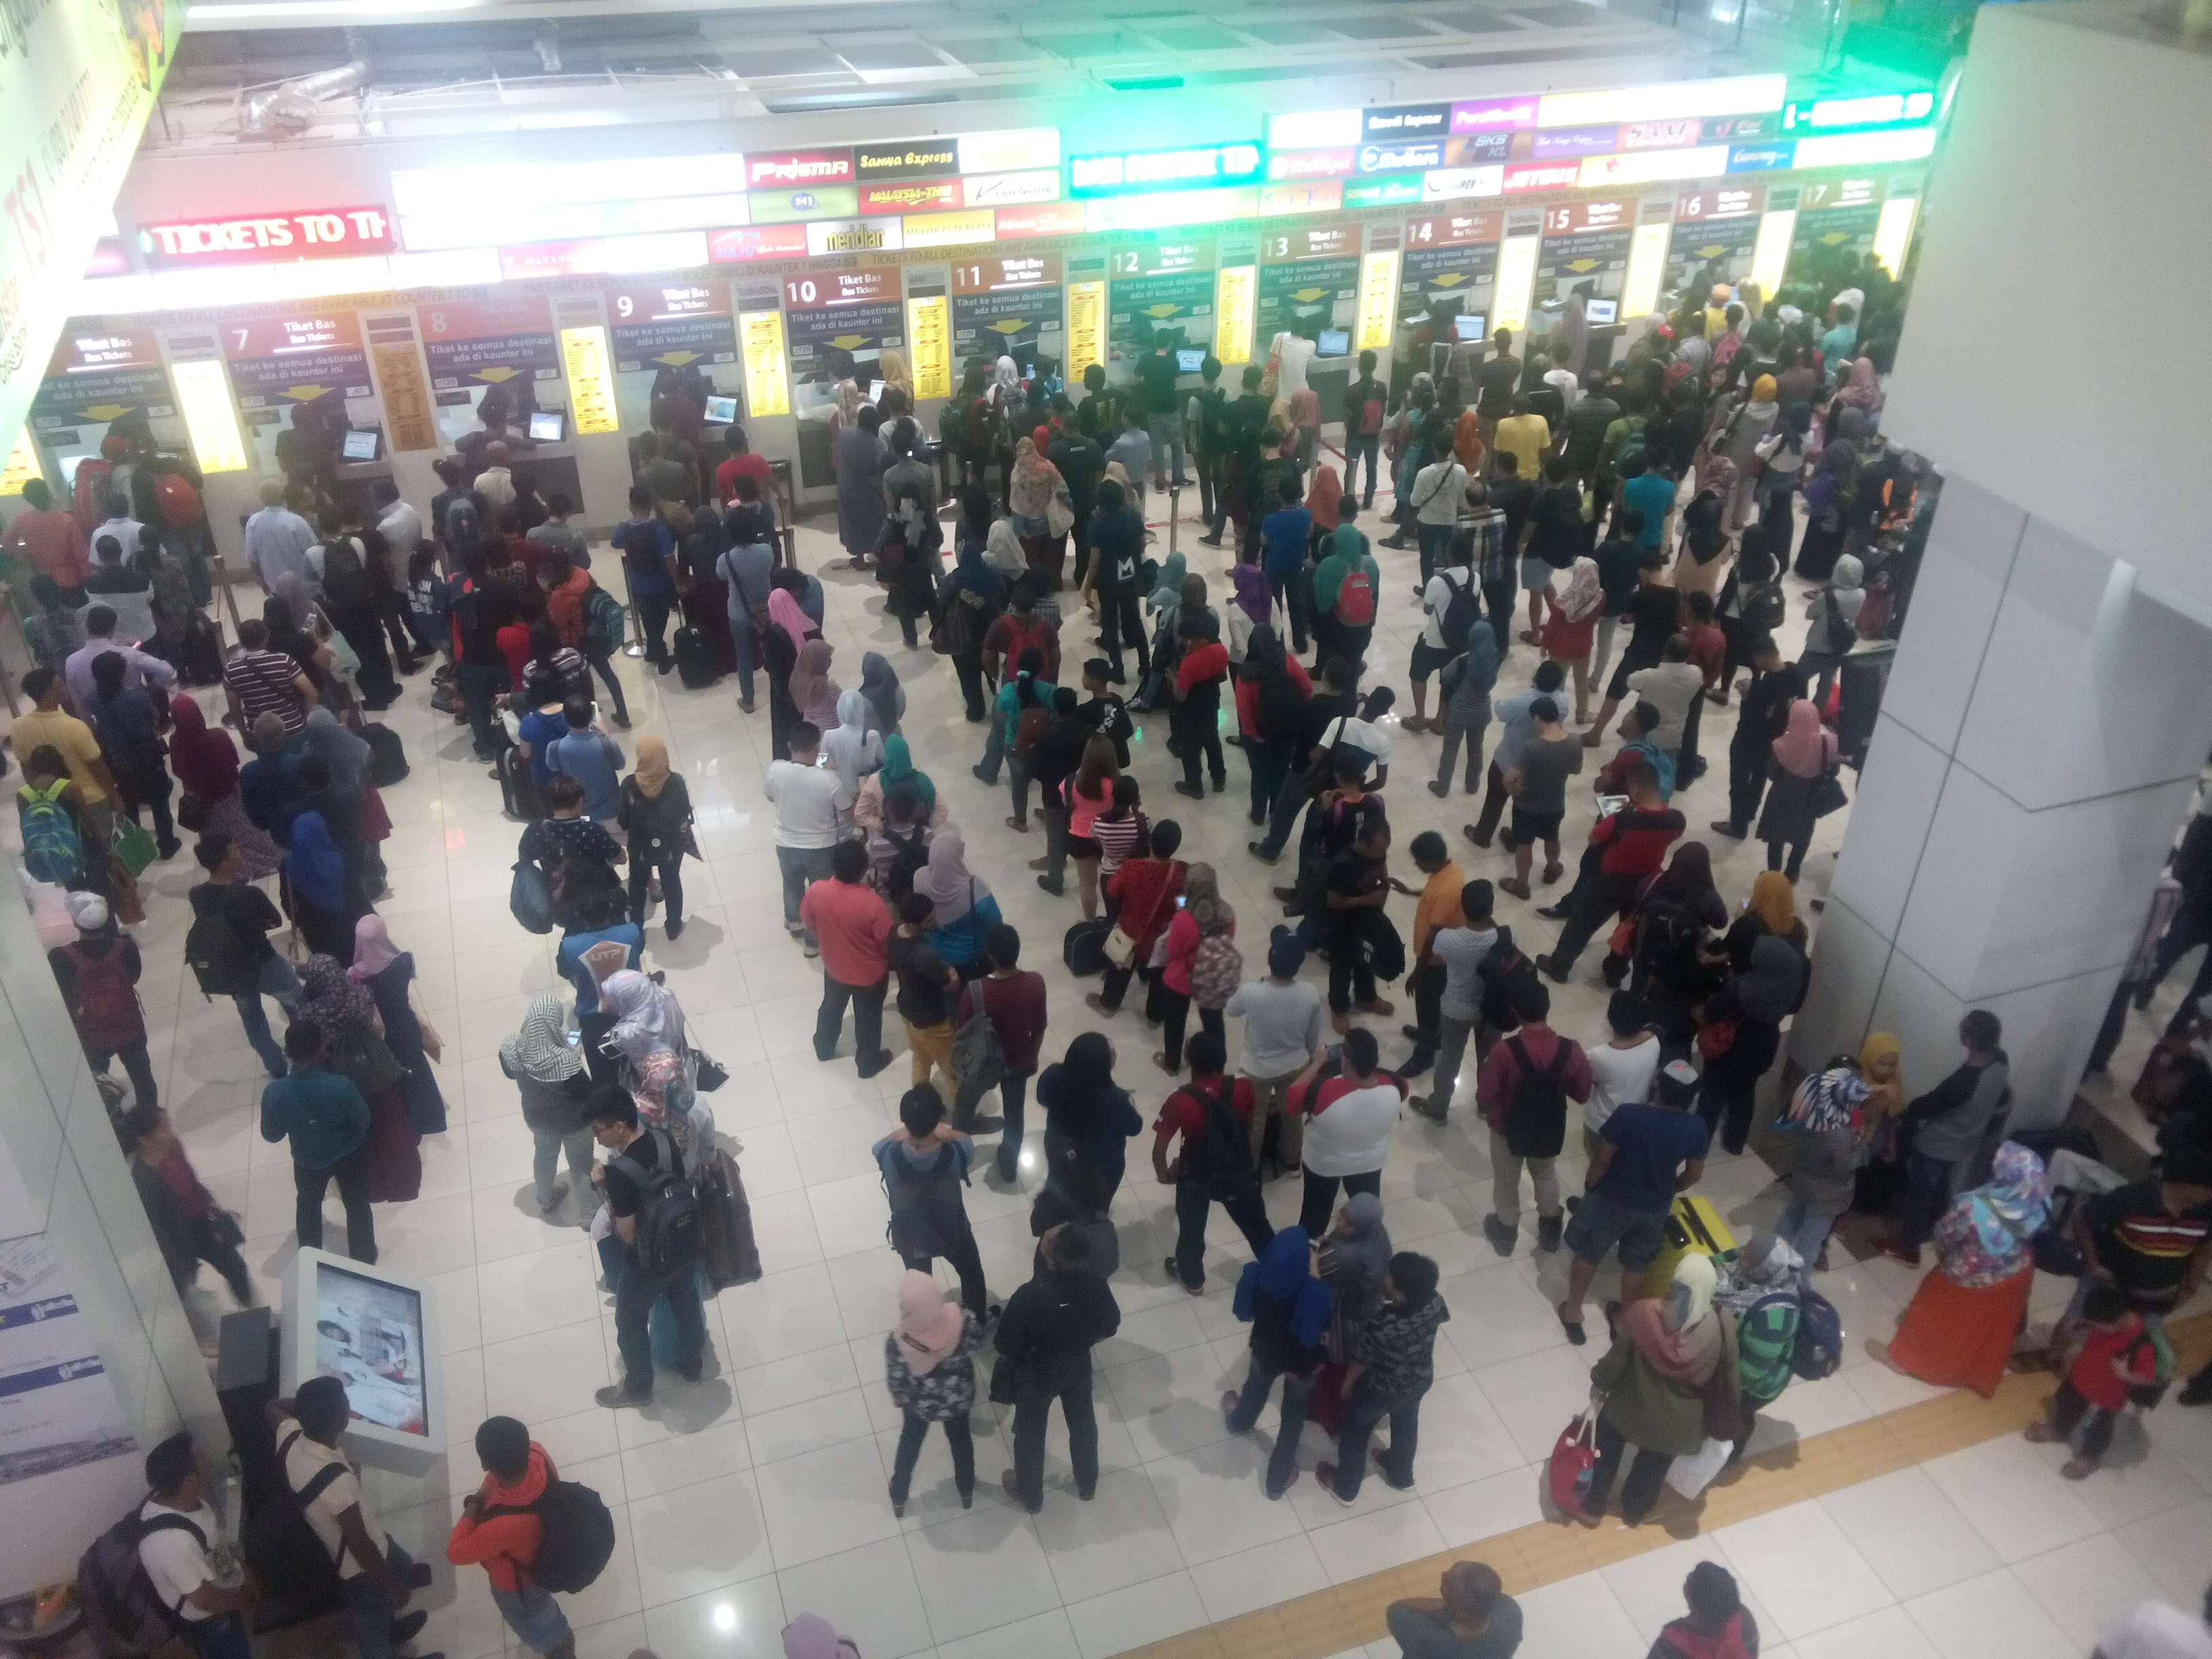 A crowd of people lining up for bus tickets, from above.